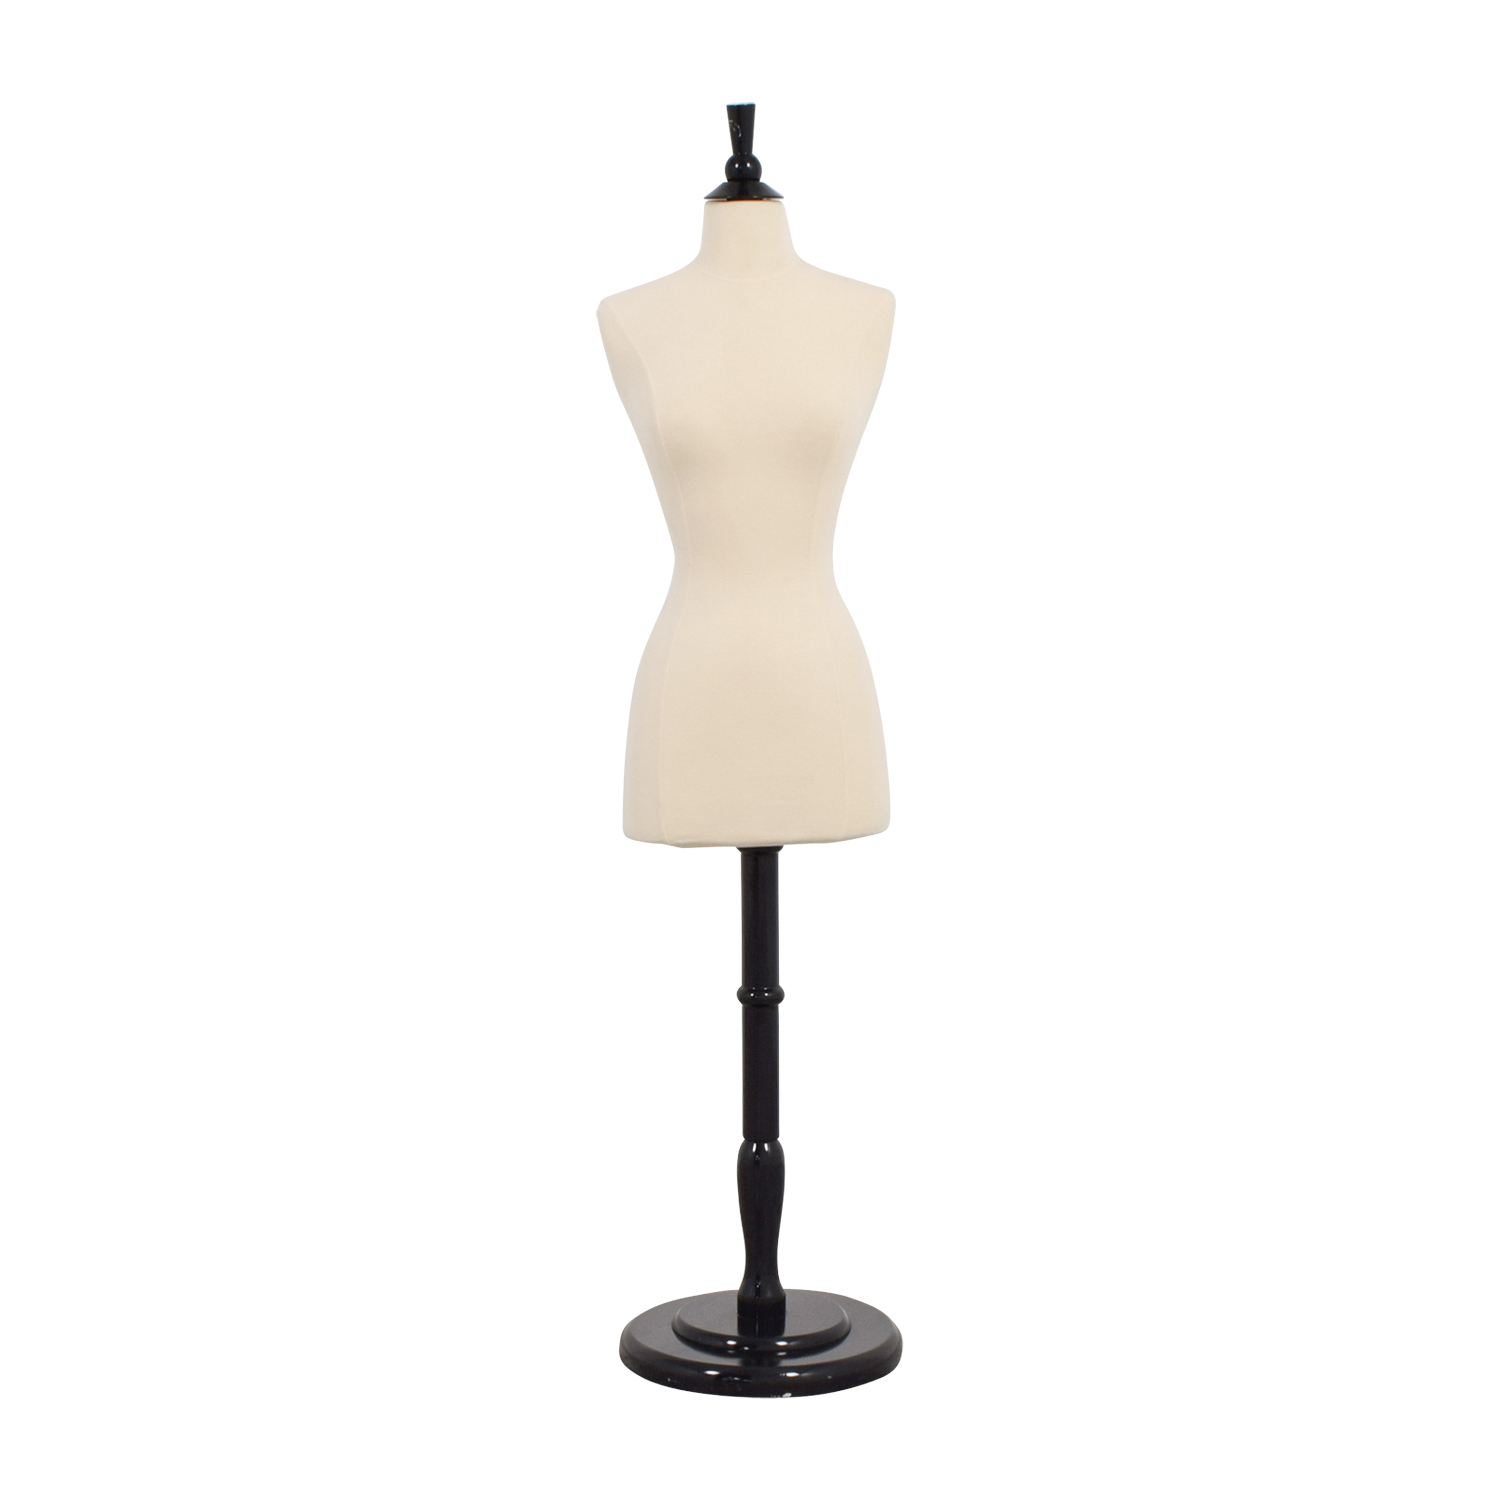 Dressform White and Black Mannequin sale